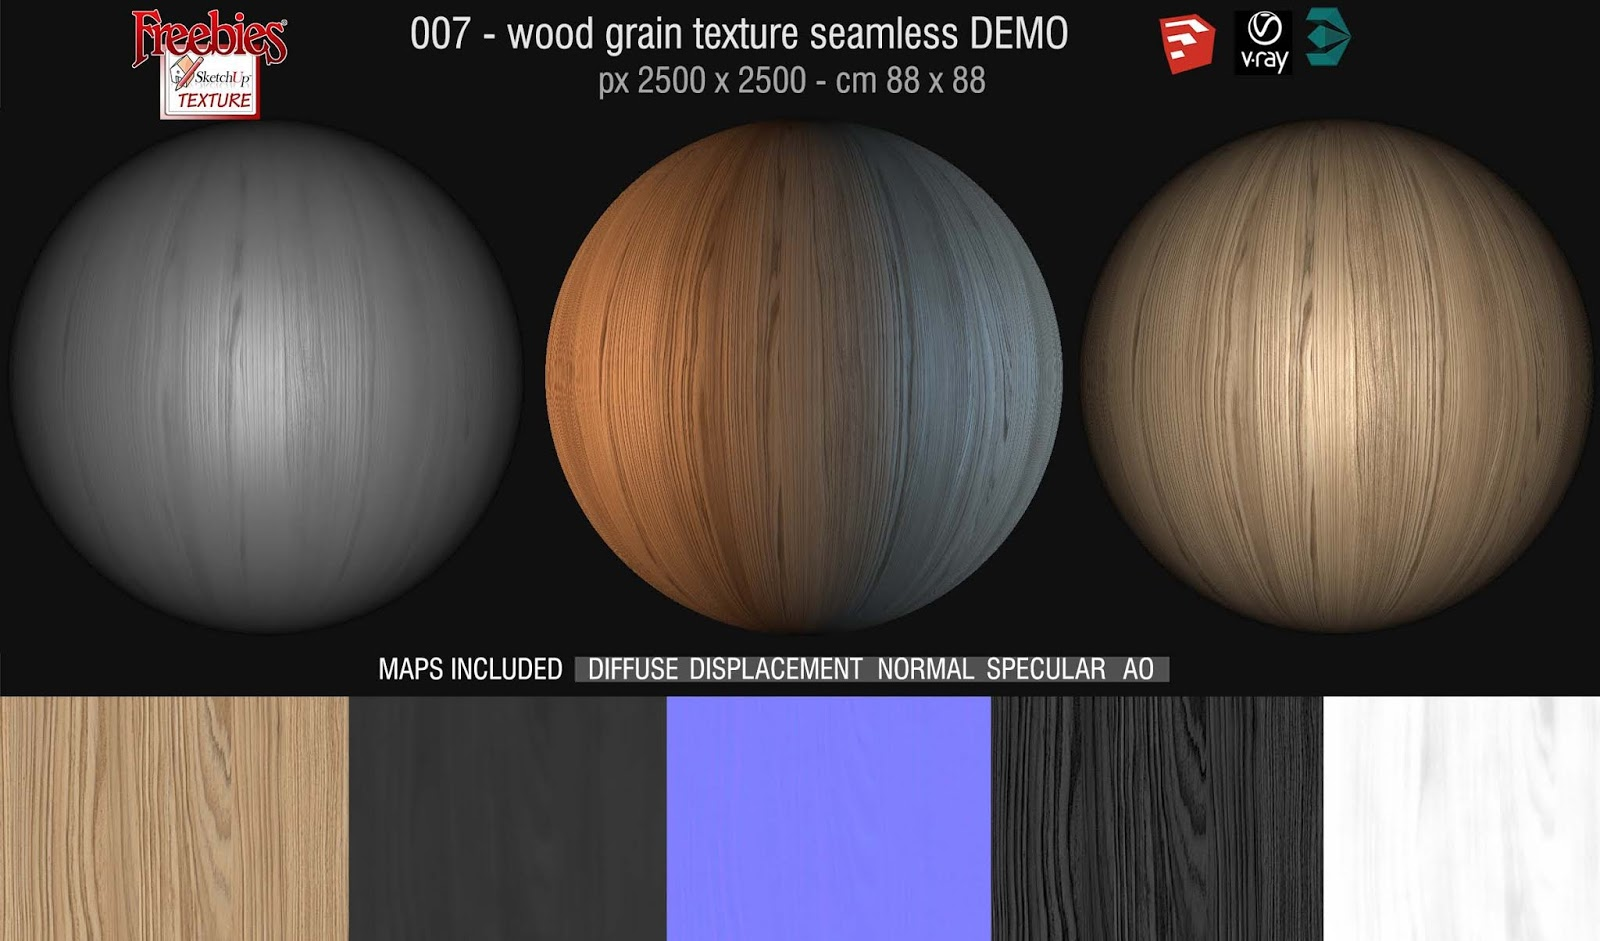 SKETCHUP TEXTURE: Freebies today: wood grain texture